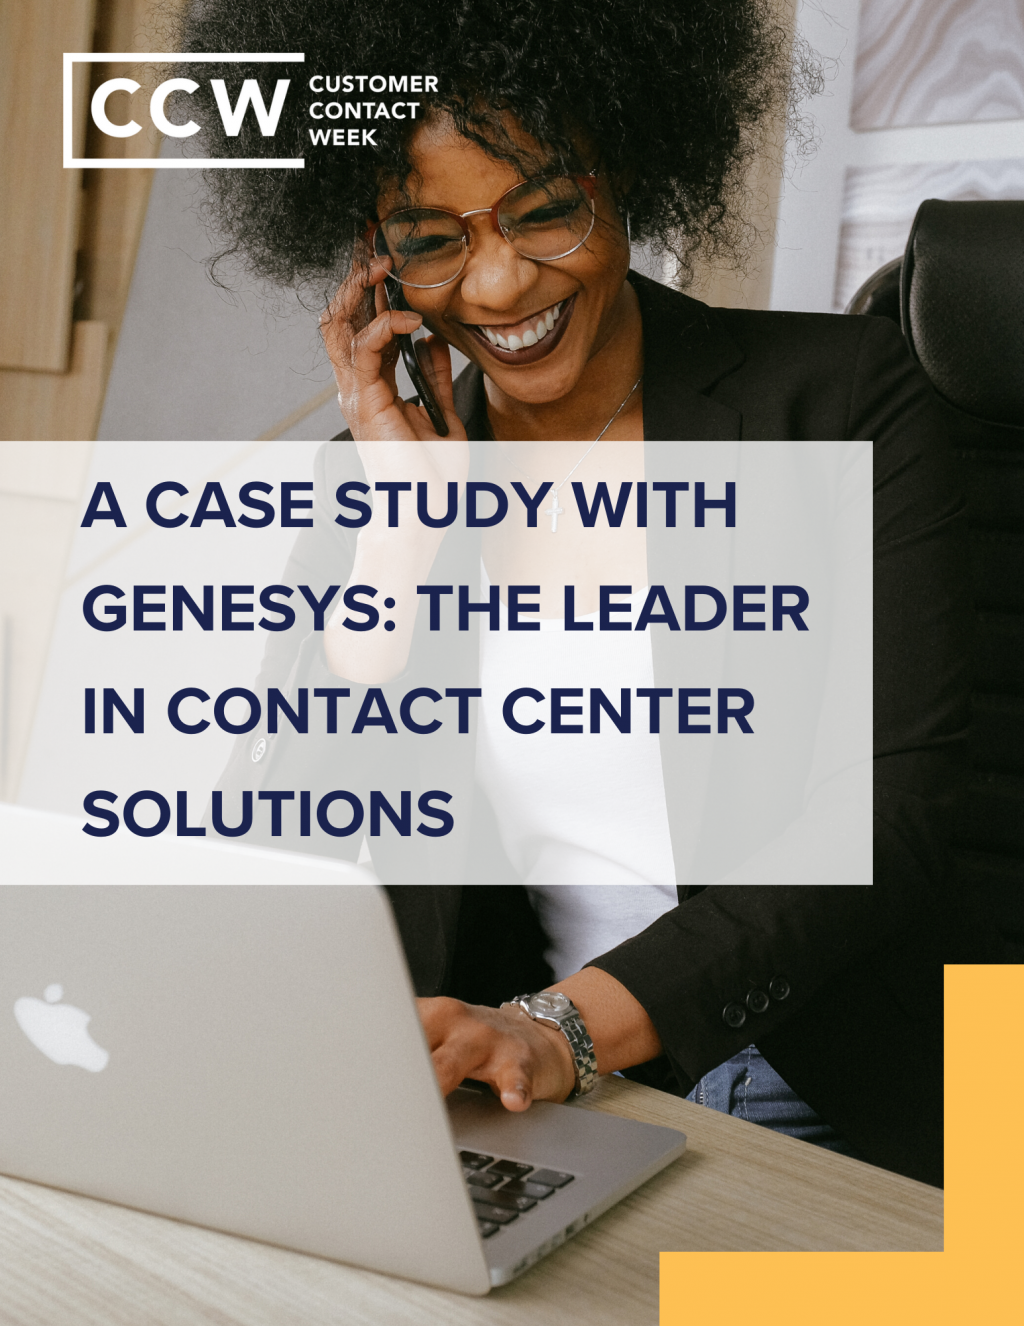 A Case Study With Genesys: The Leader In Contact Center Solutions